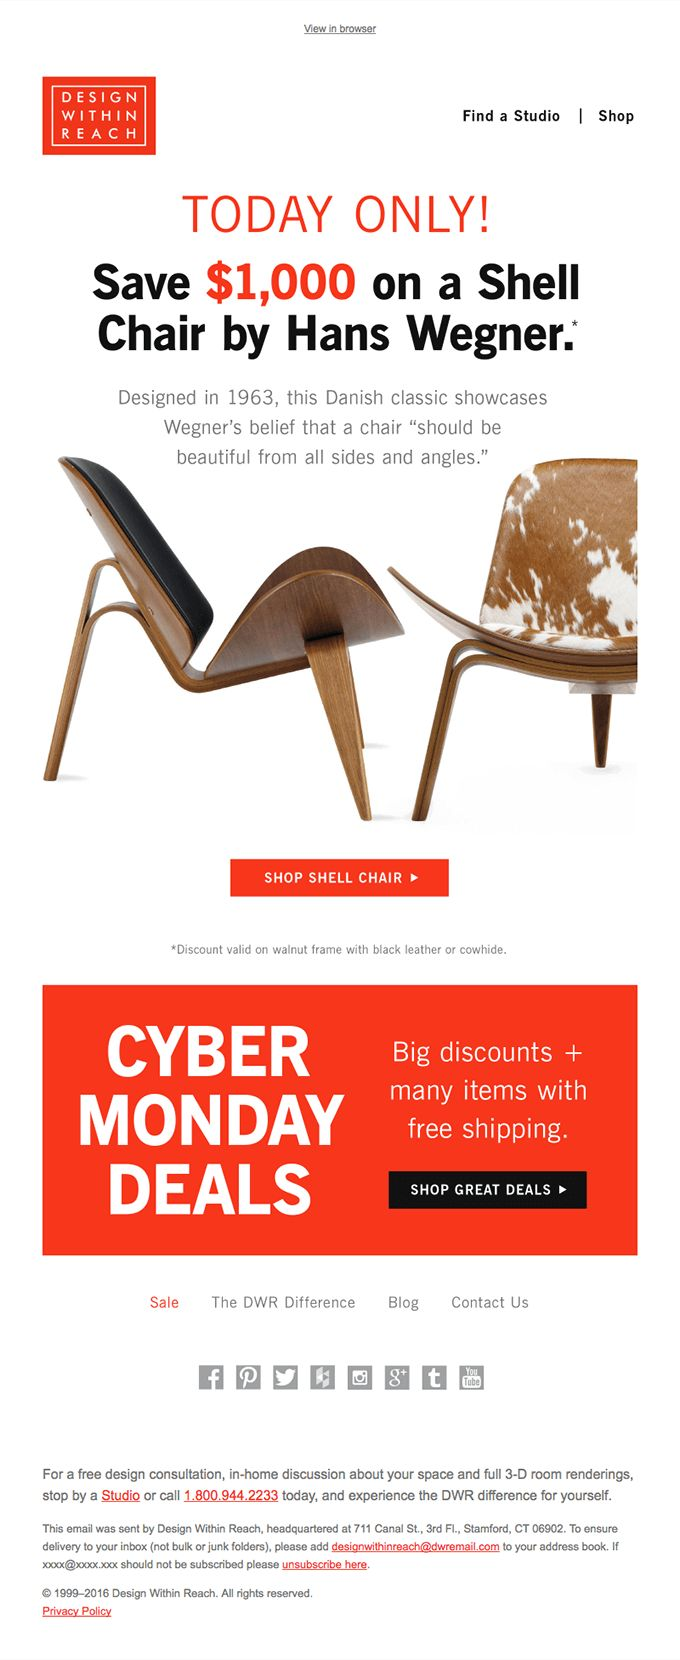 Score! It's Cyber Monday: Mystery deal revealed! - Really Good Emails